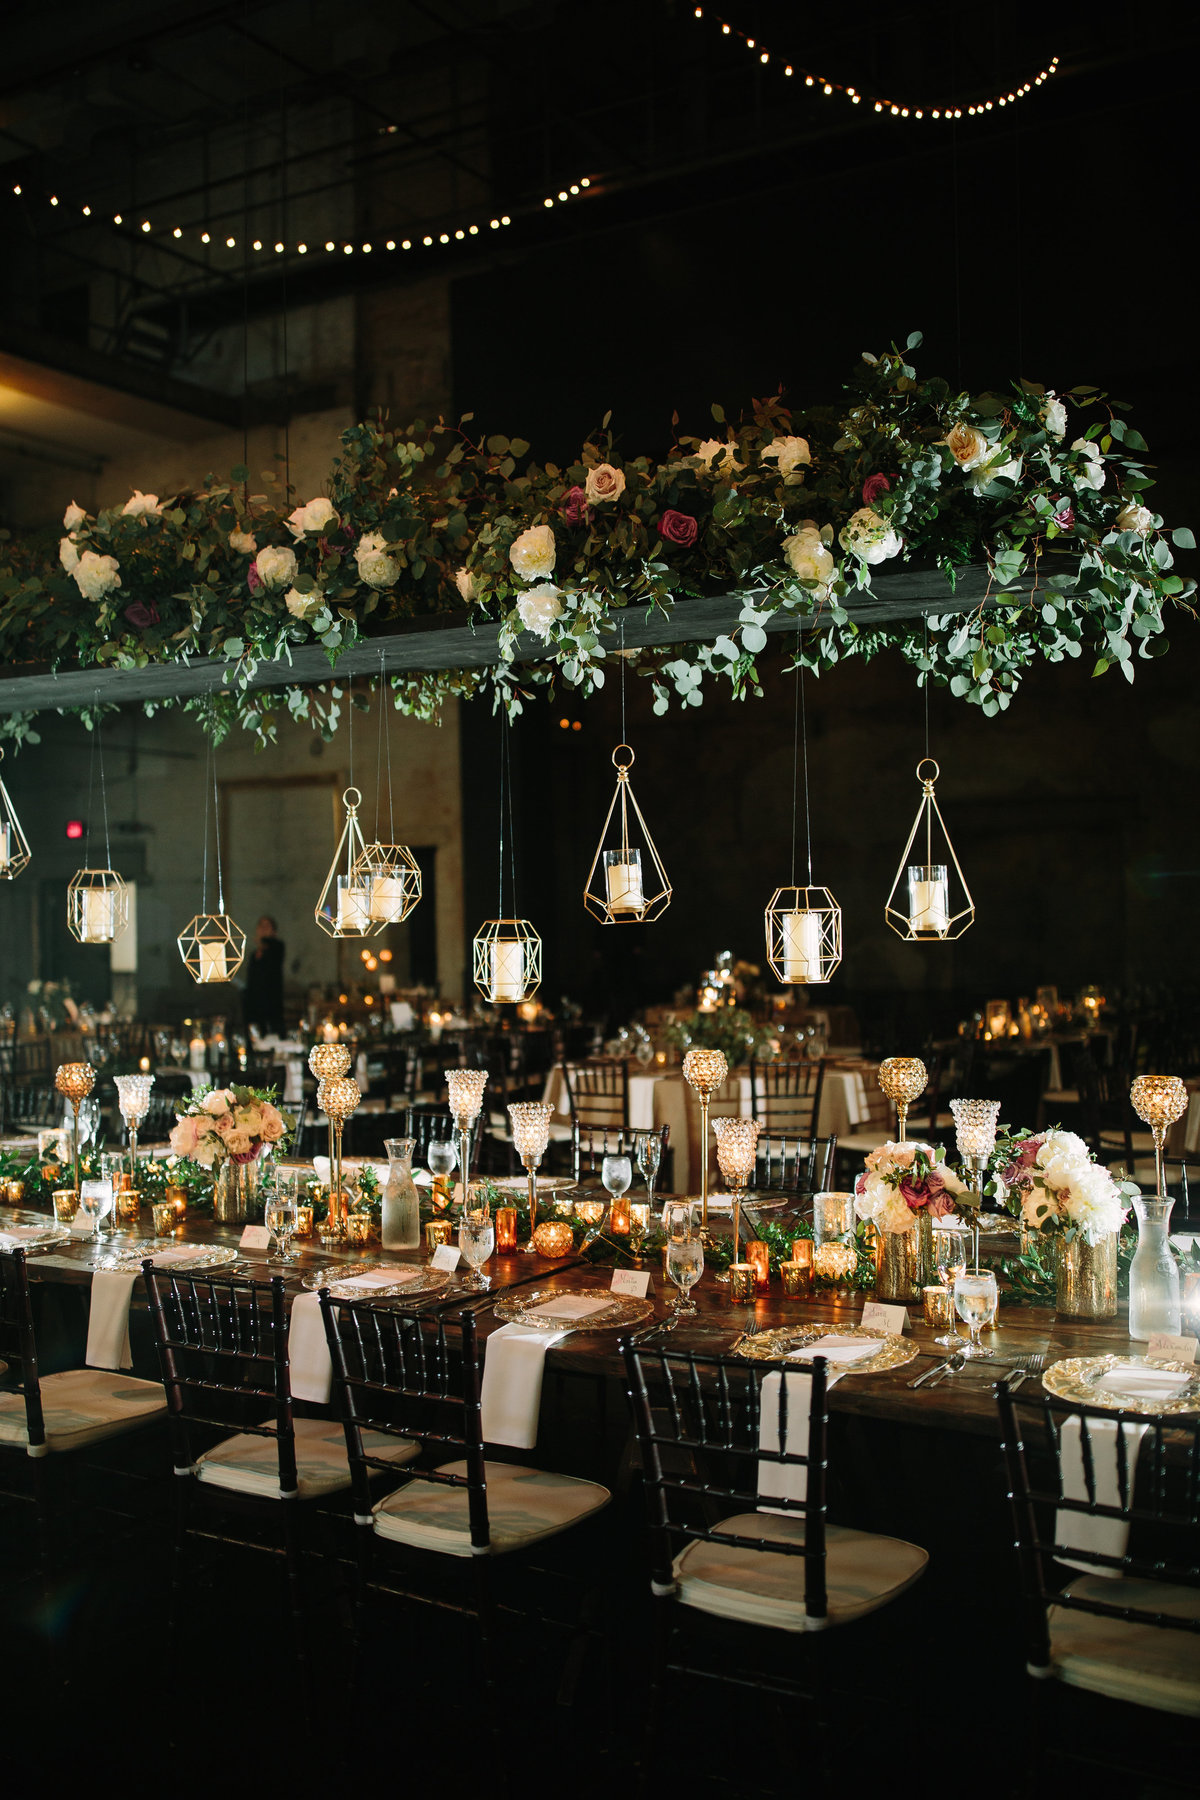 Fab Event Design Wedding Planning Minneapolis Rochester St. Paul Full Service Day of Management14